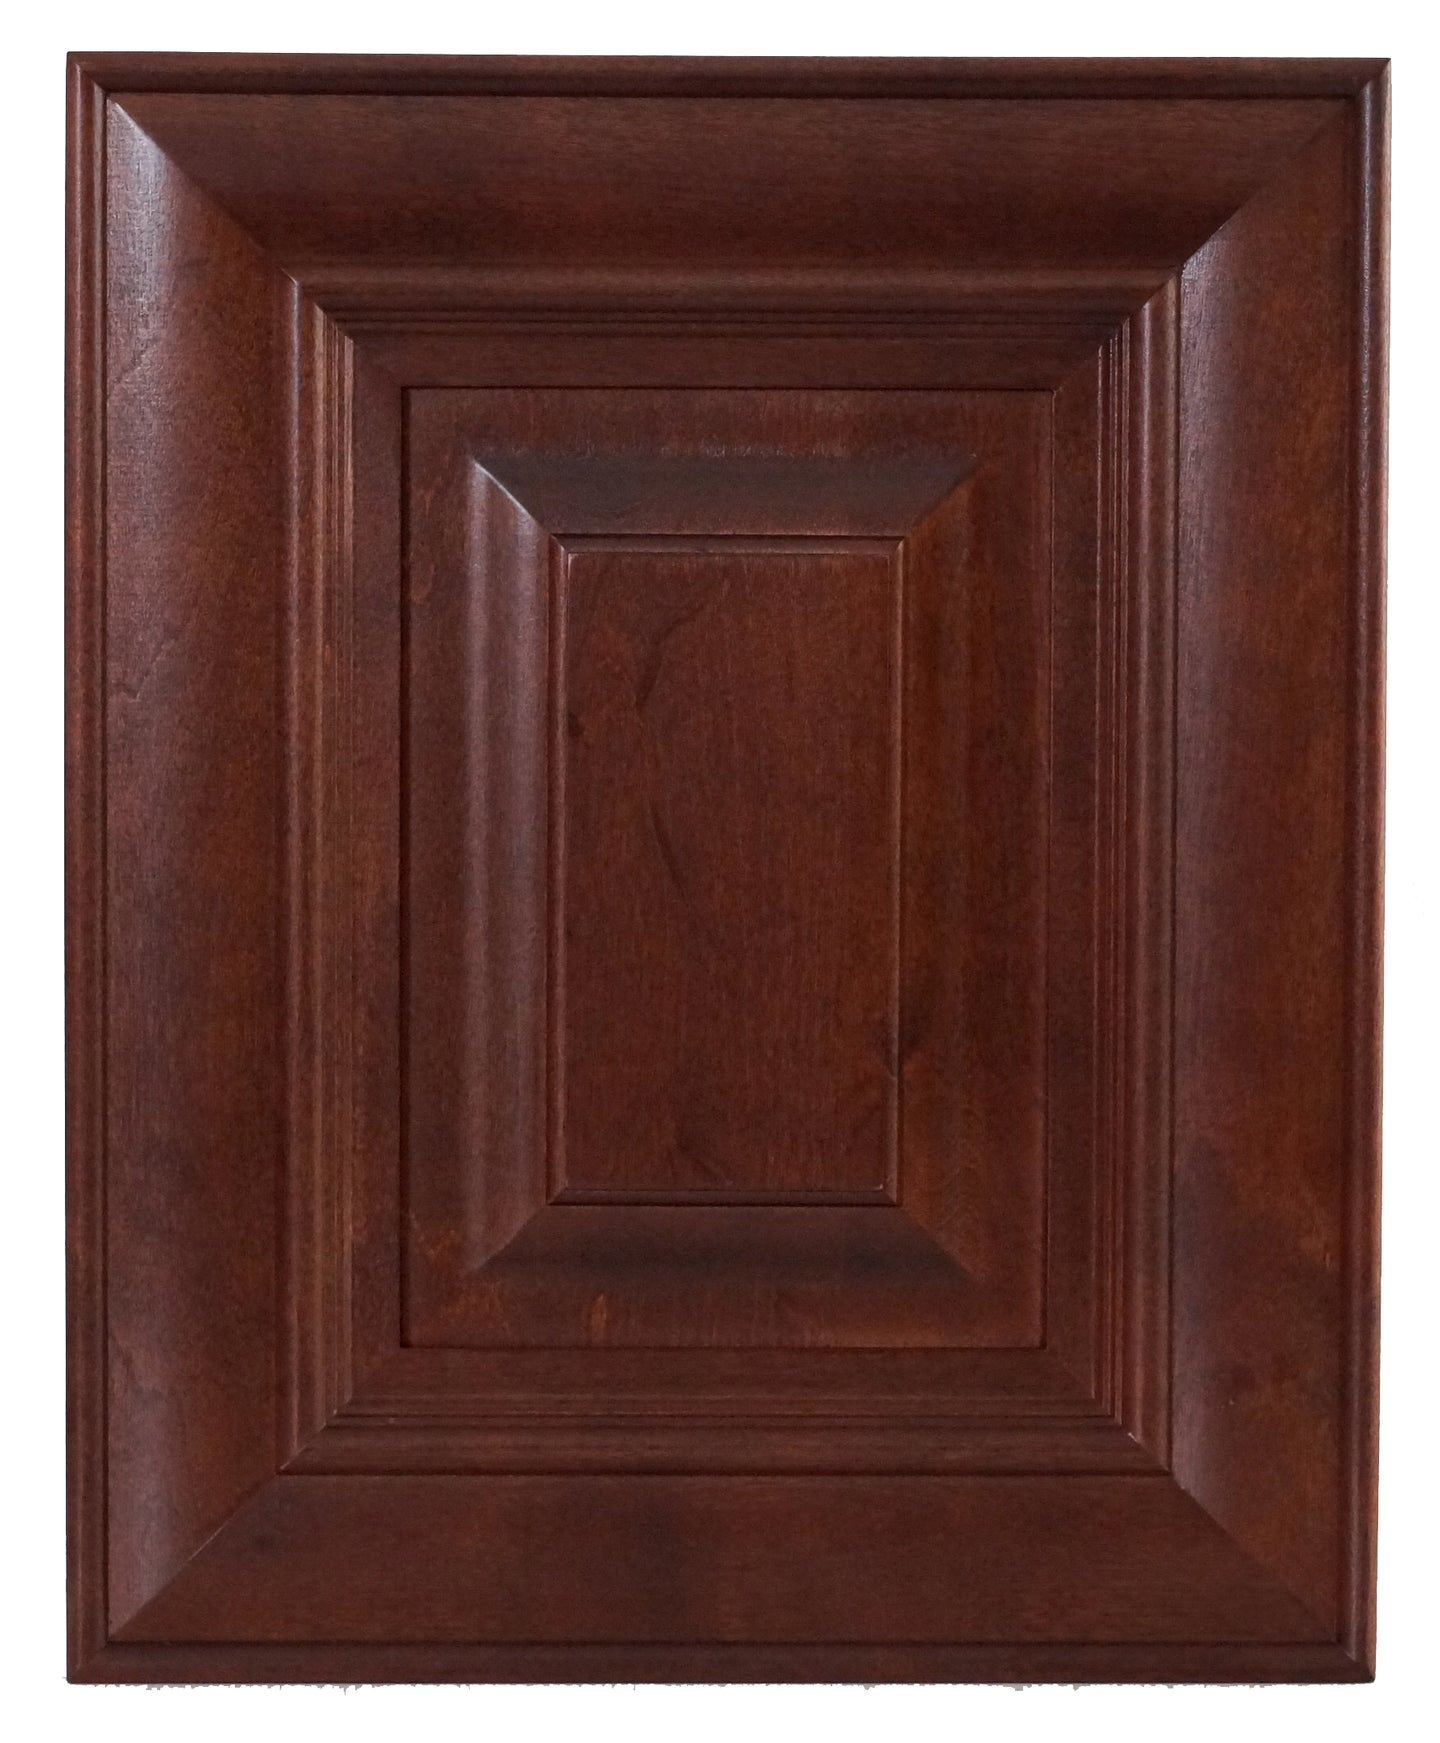 Mahogany Traditional Raised Panel Door - Quality Kitchens For Less